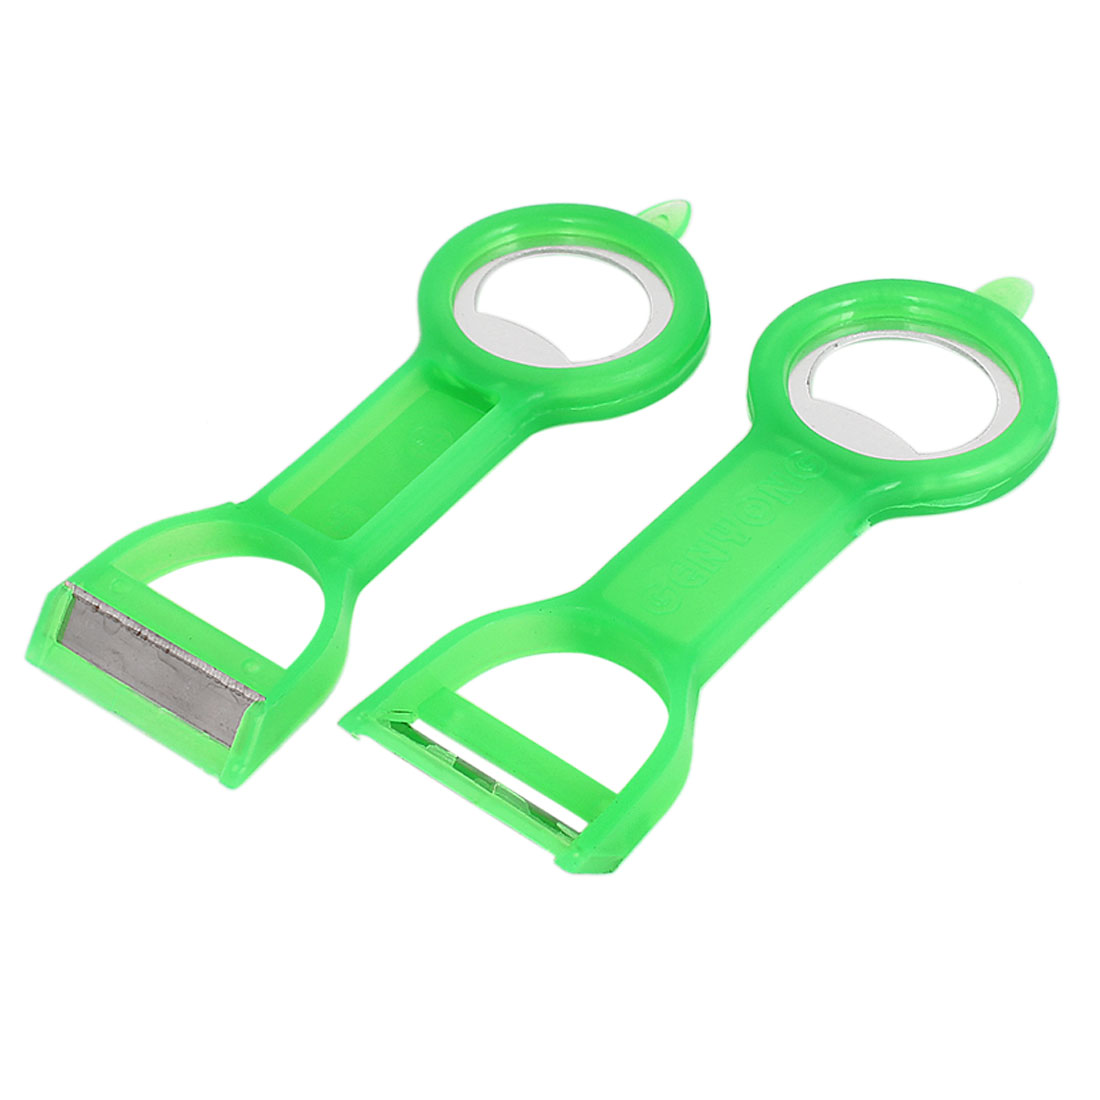 2pcs Kitchen Fruit Vegetable Peelers Parer Cutlery Bottle Opener Green